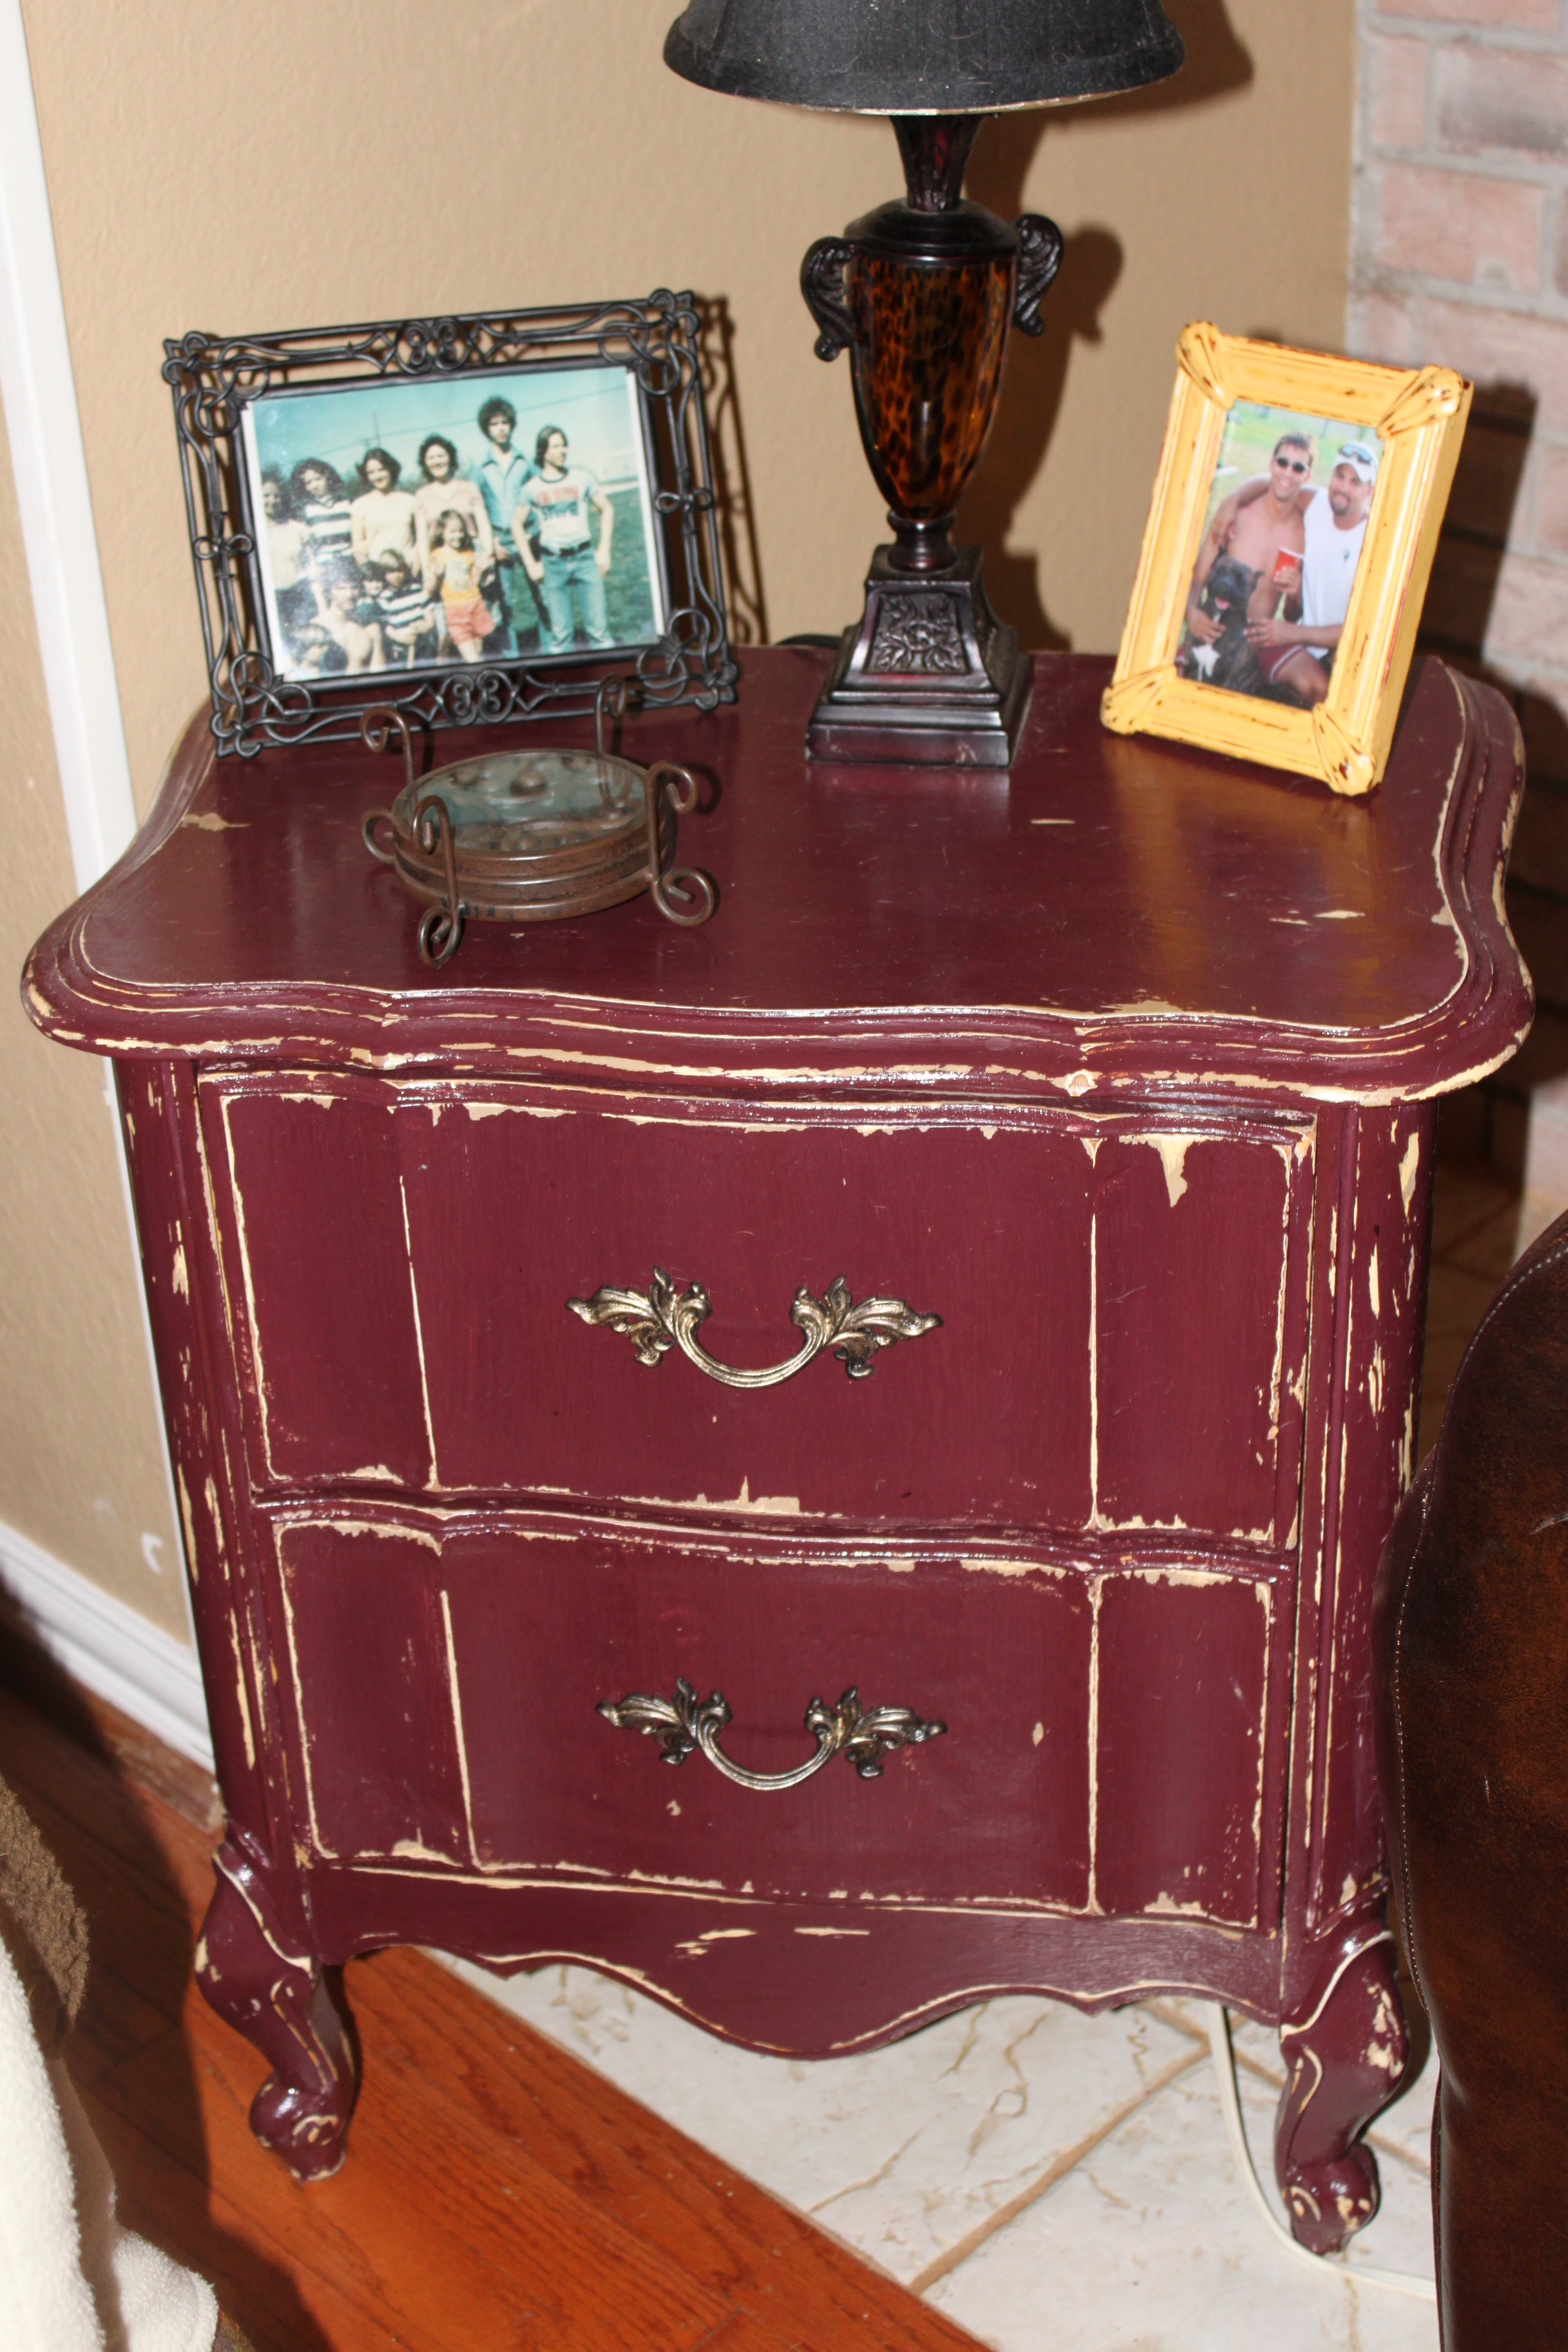 Ancient-burgundy-over-creamy-pearl-colored-side-table-shabby-chic-and-heavy-distressing-Shabby-Ch-wallpaper-wp4404415